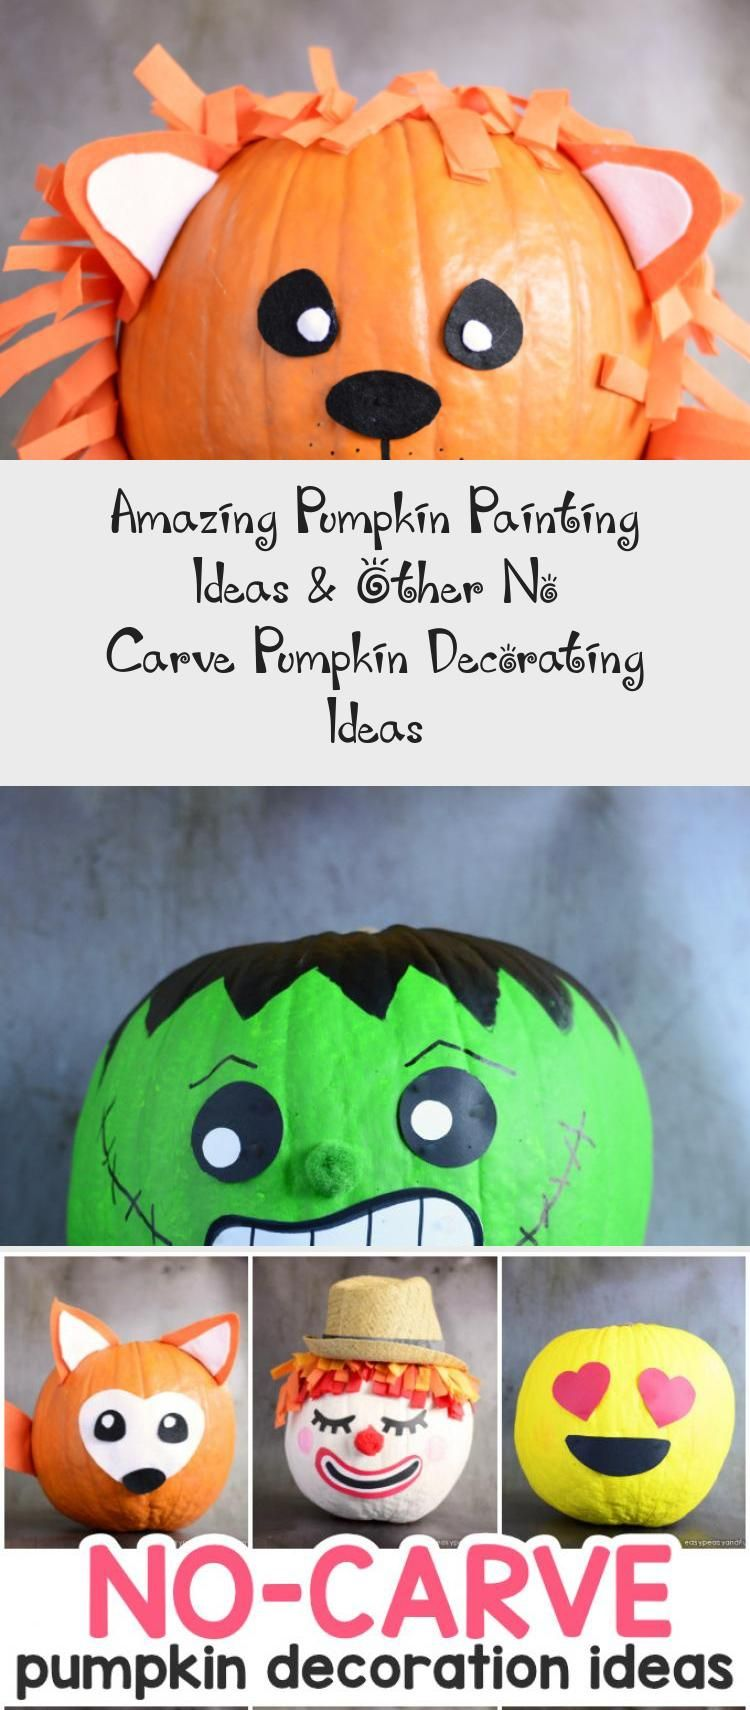 Amazing Pumpkin Painting Ideas & Other No Carve Pumpkin Decorating Ideas #Modernpaintingideas #Christmaspaintingideas #paintingideasForKids #paintingideasOnWood #Glasspaintingideas #pumpkinpaintingideas